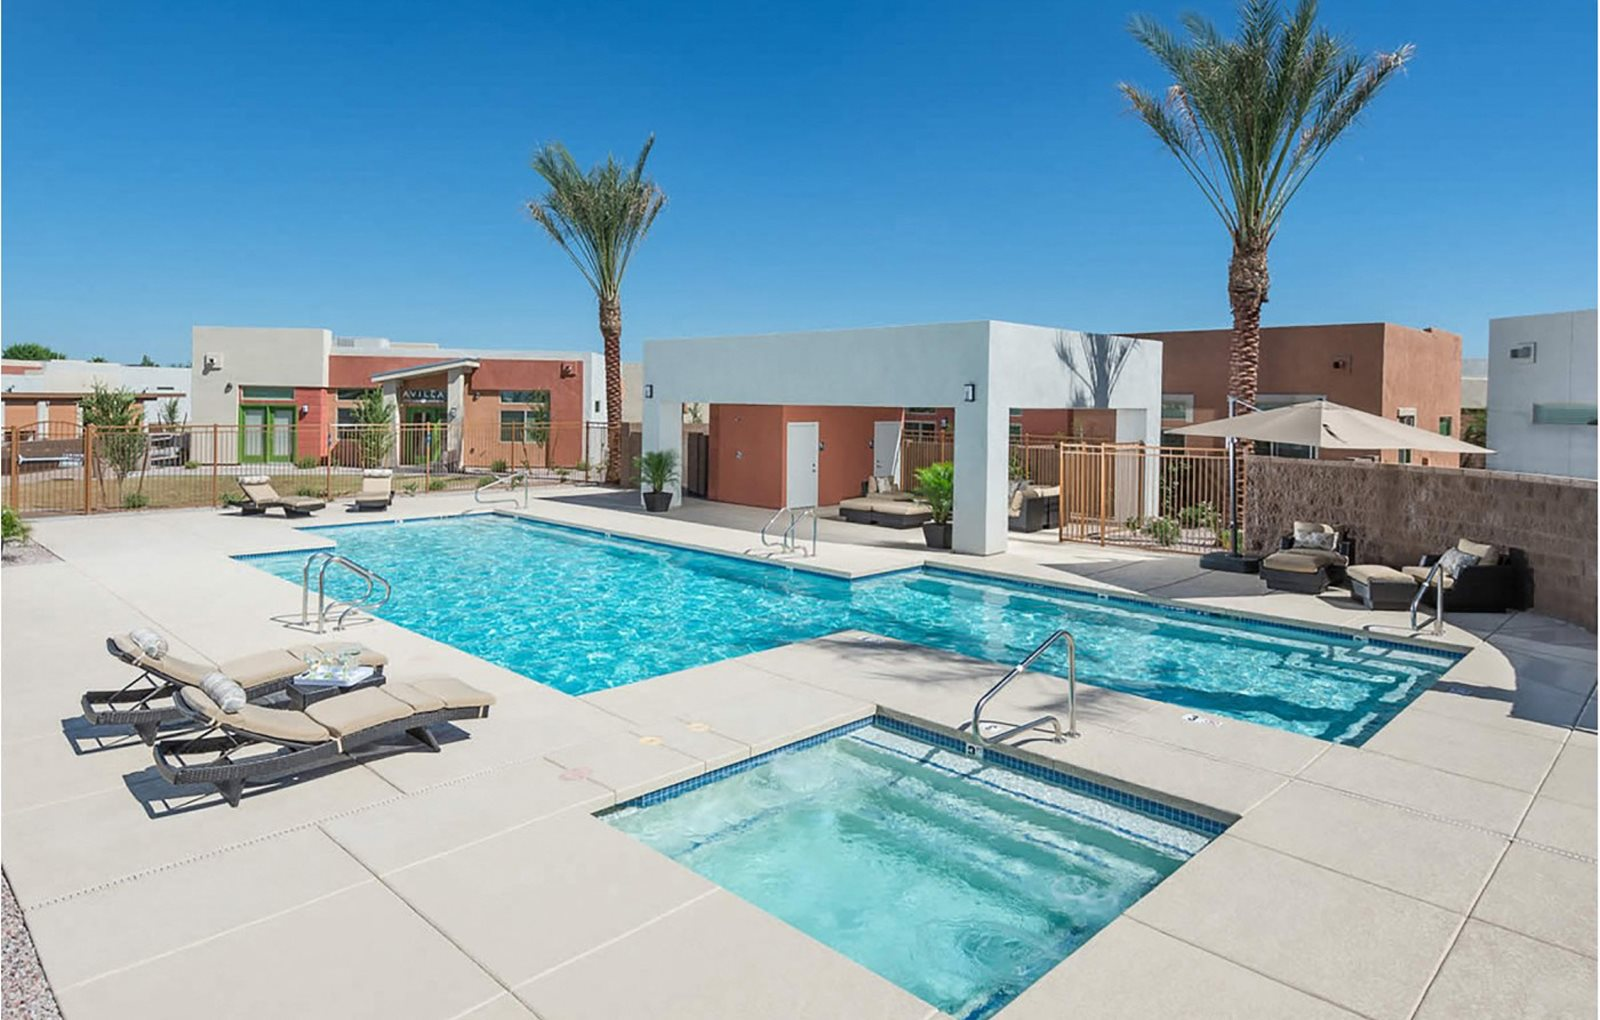 pool pool patio and spa at Casitas At San Marcos in Chandler, AZ